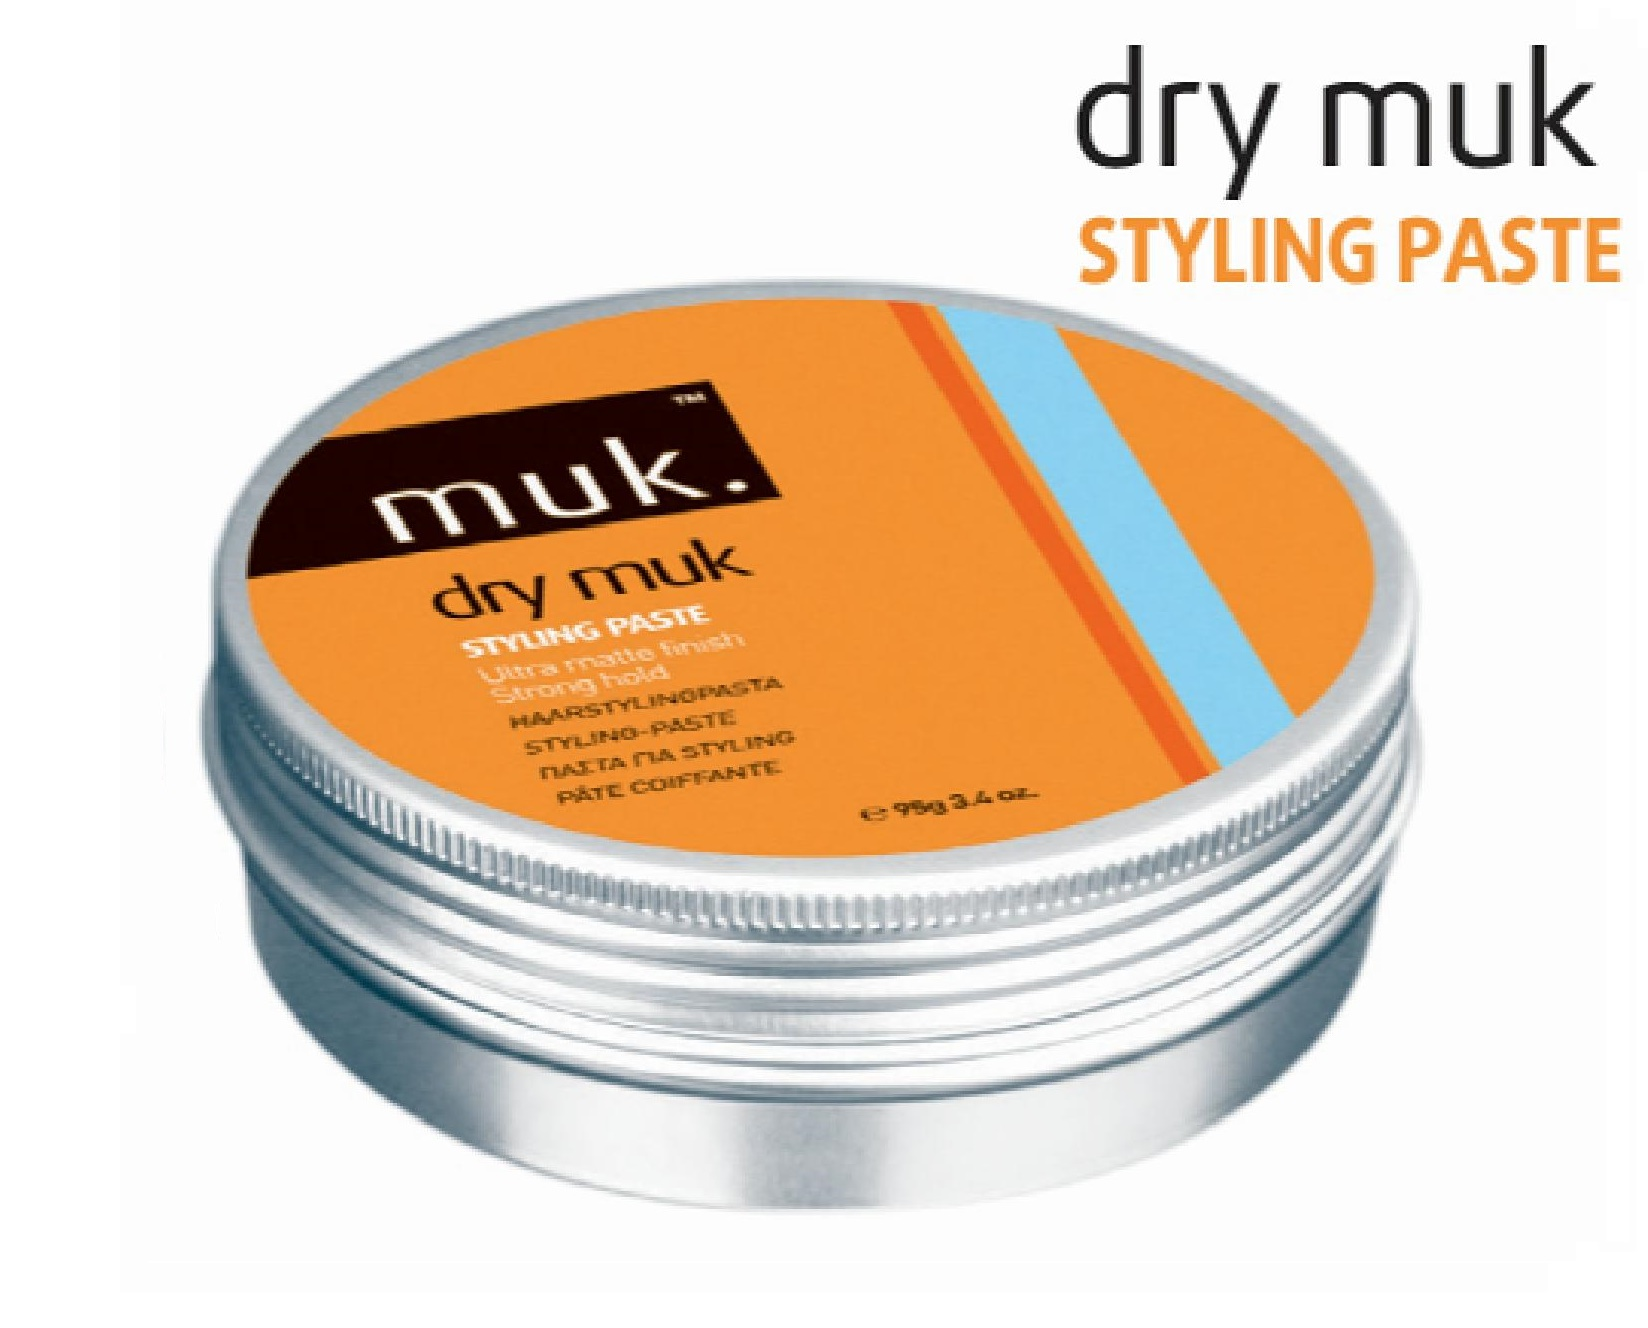 dry-muk-styling-paste